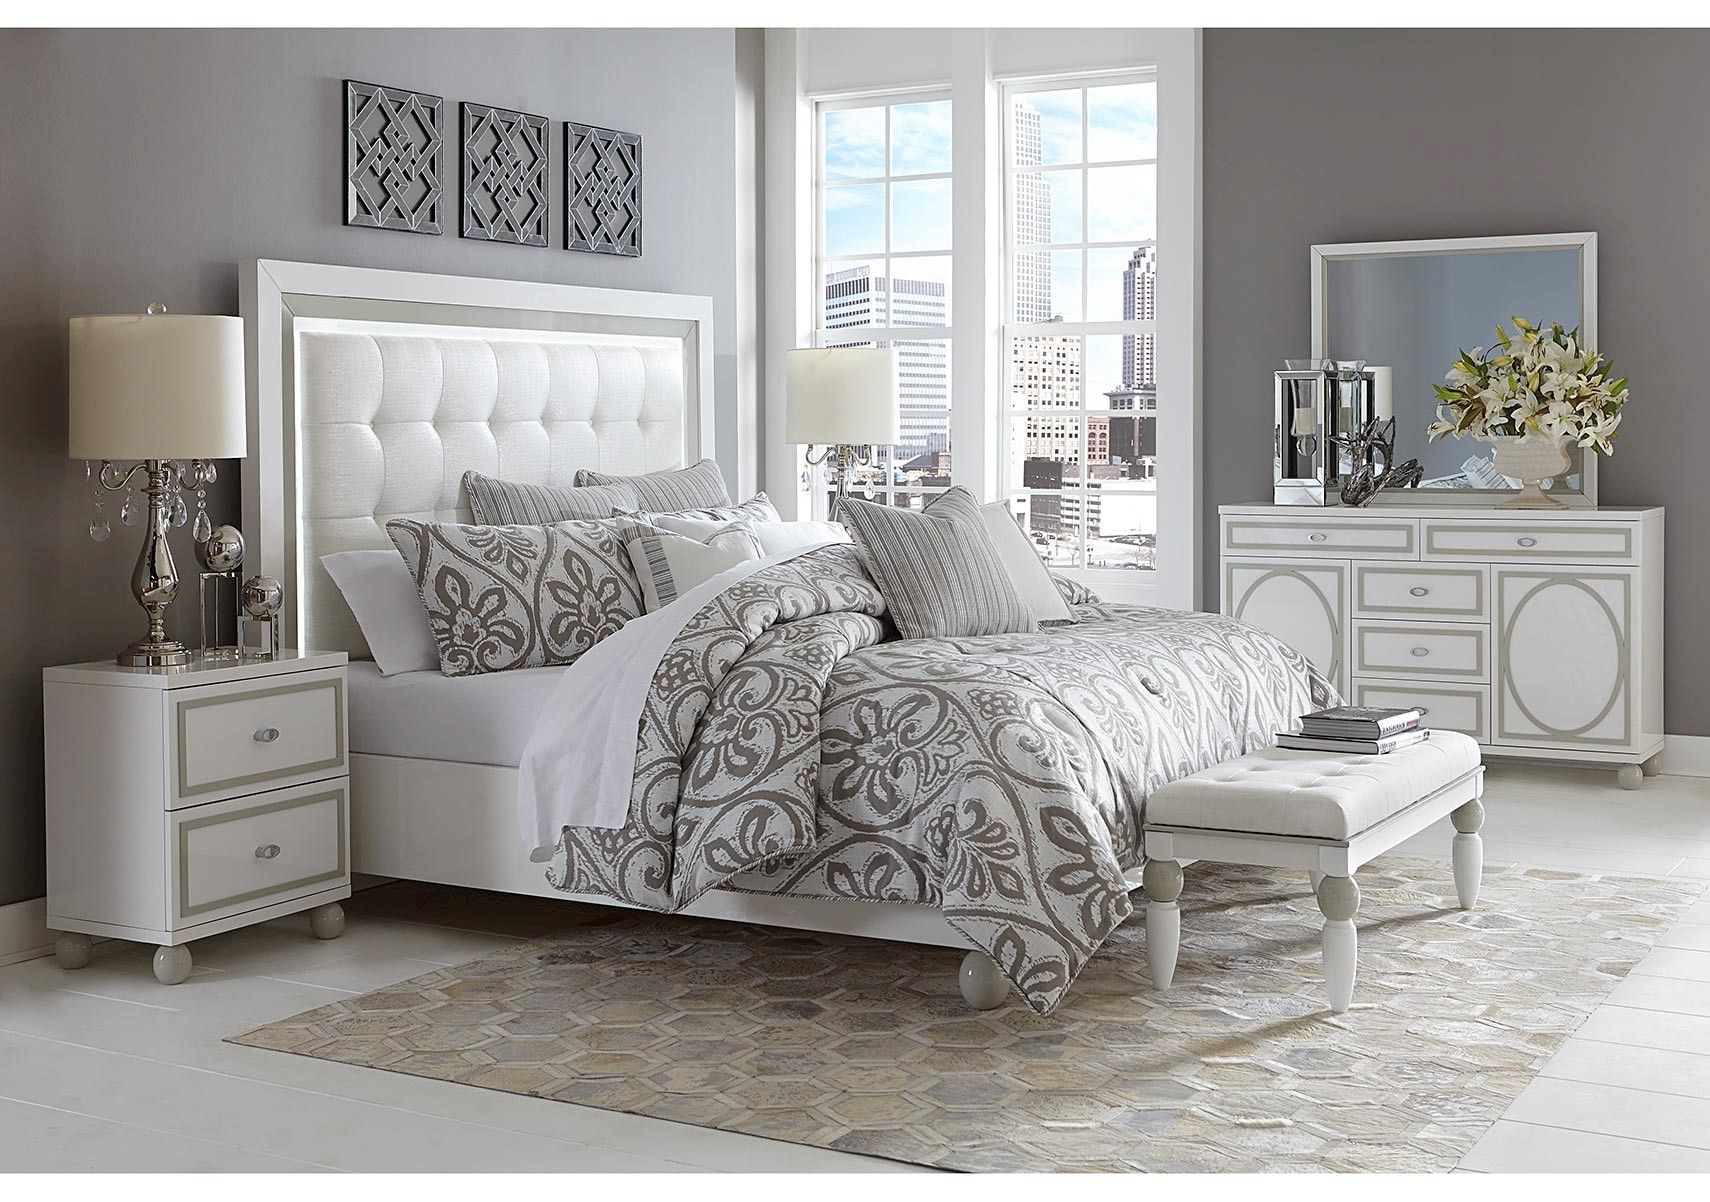 Lacks Sky Tower Pc Queen Bedroom Set Contemporary Style Home